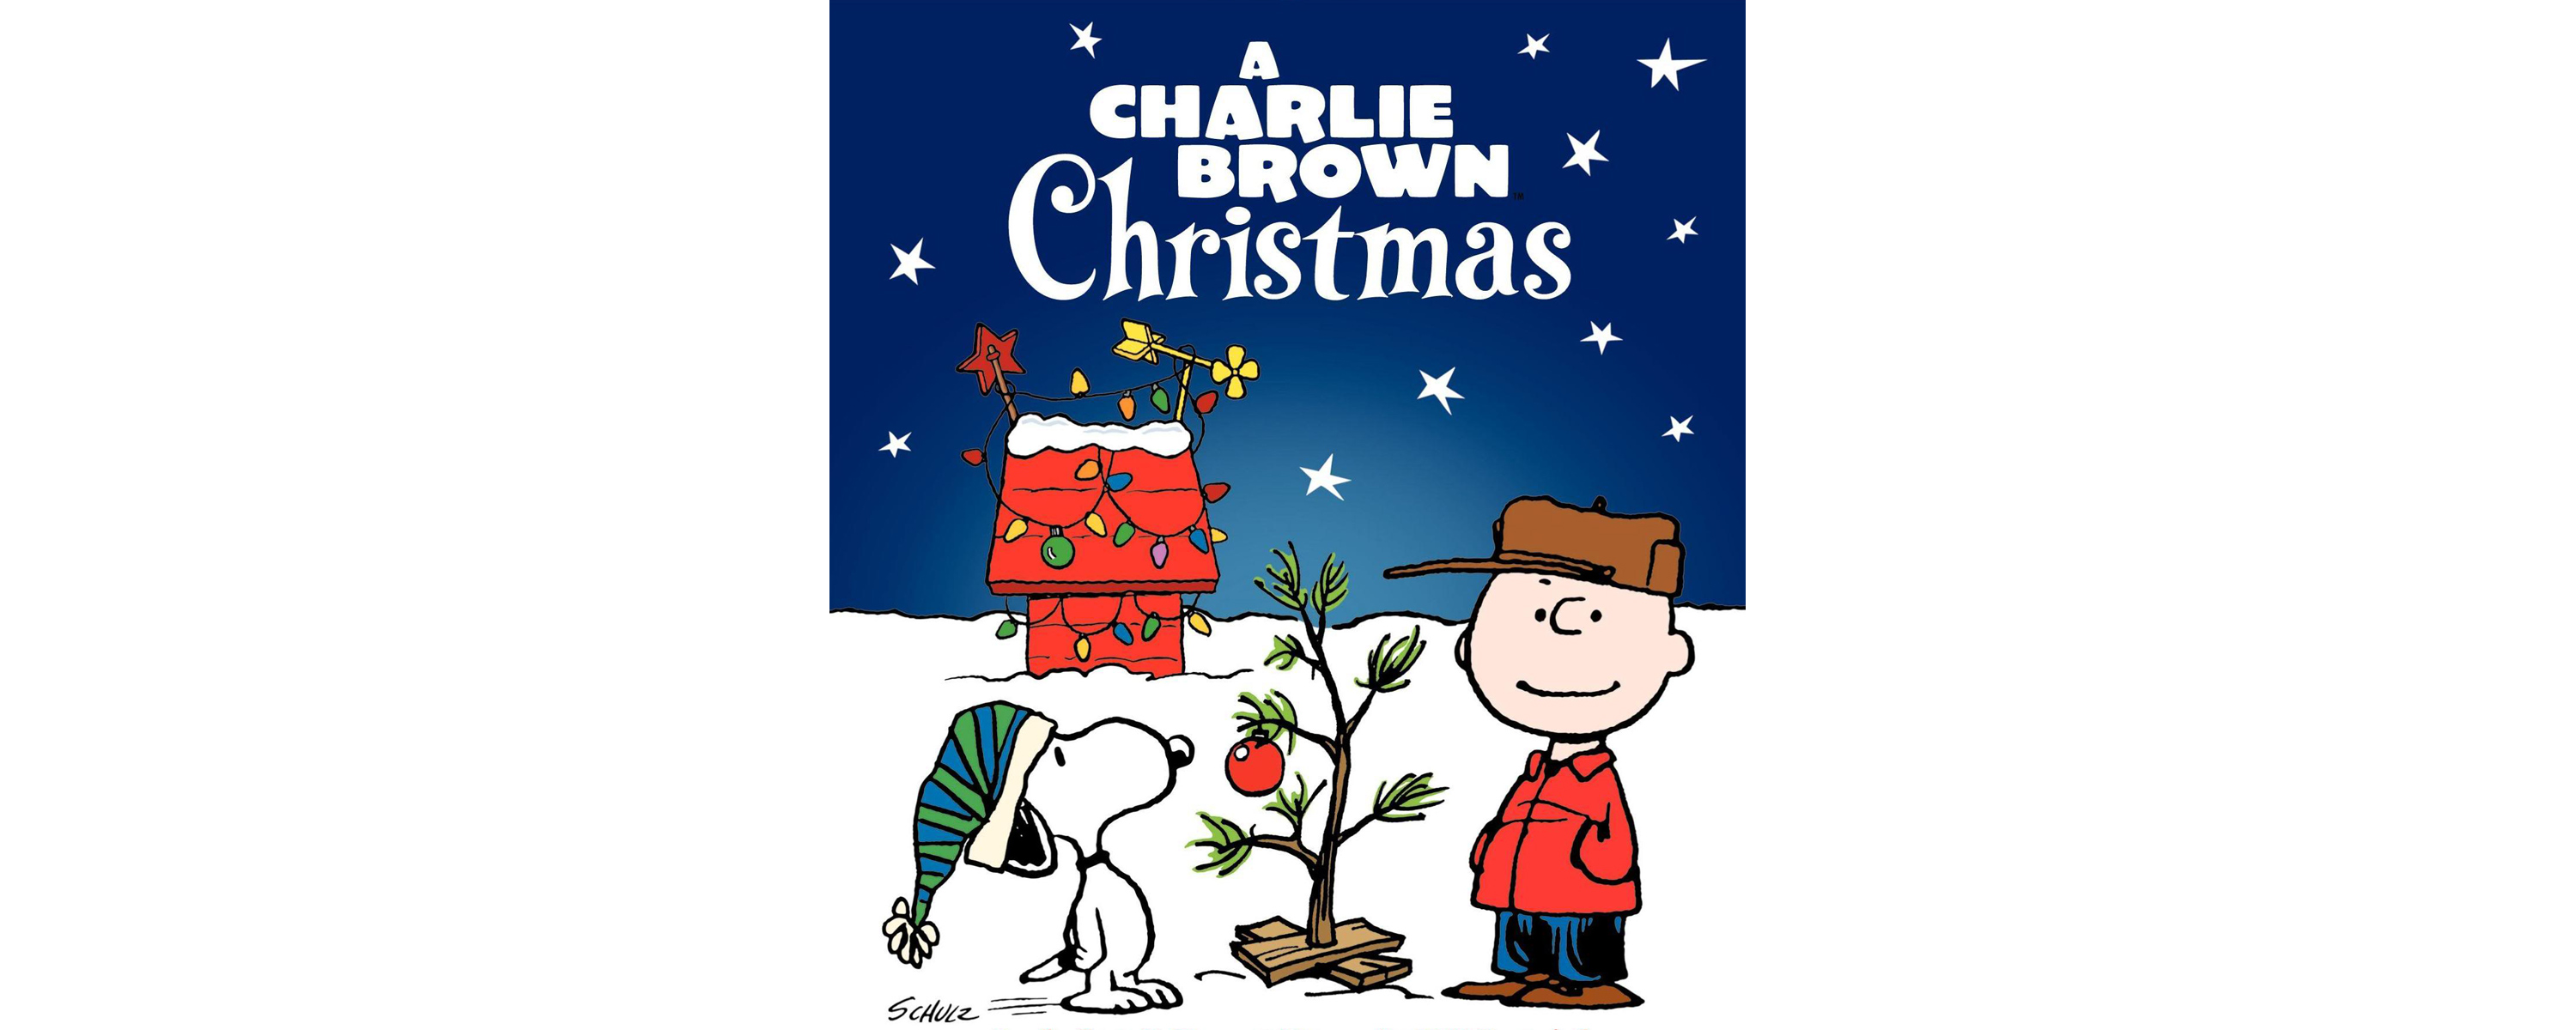 charlie brown christmas music - HD 3000×1200